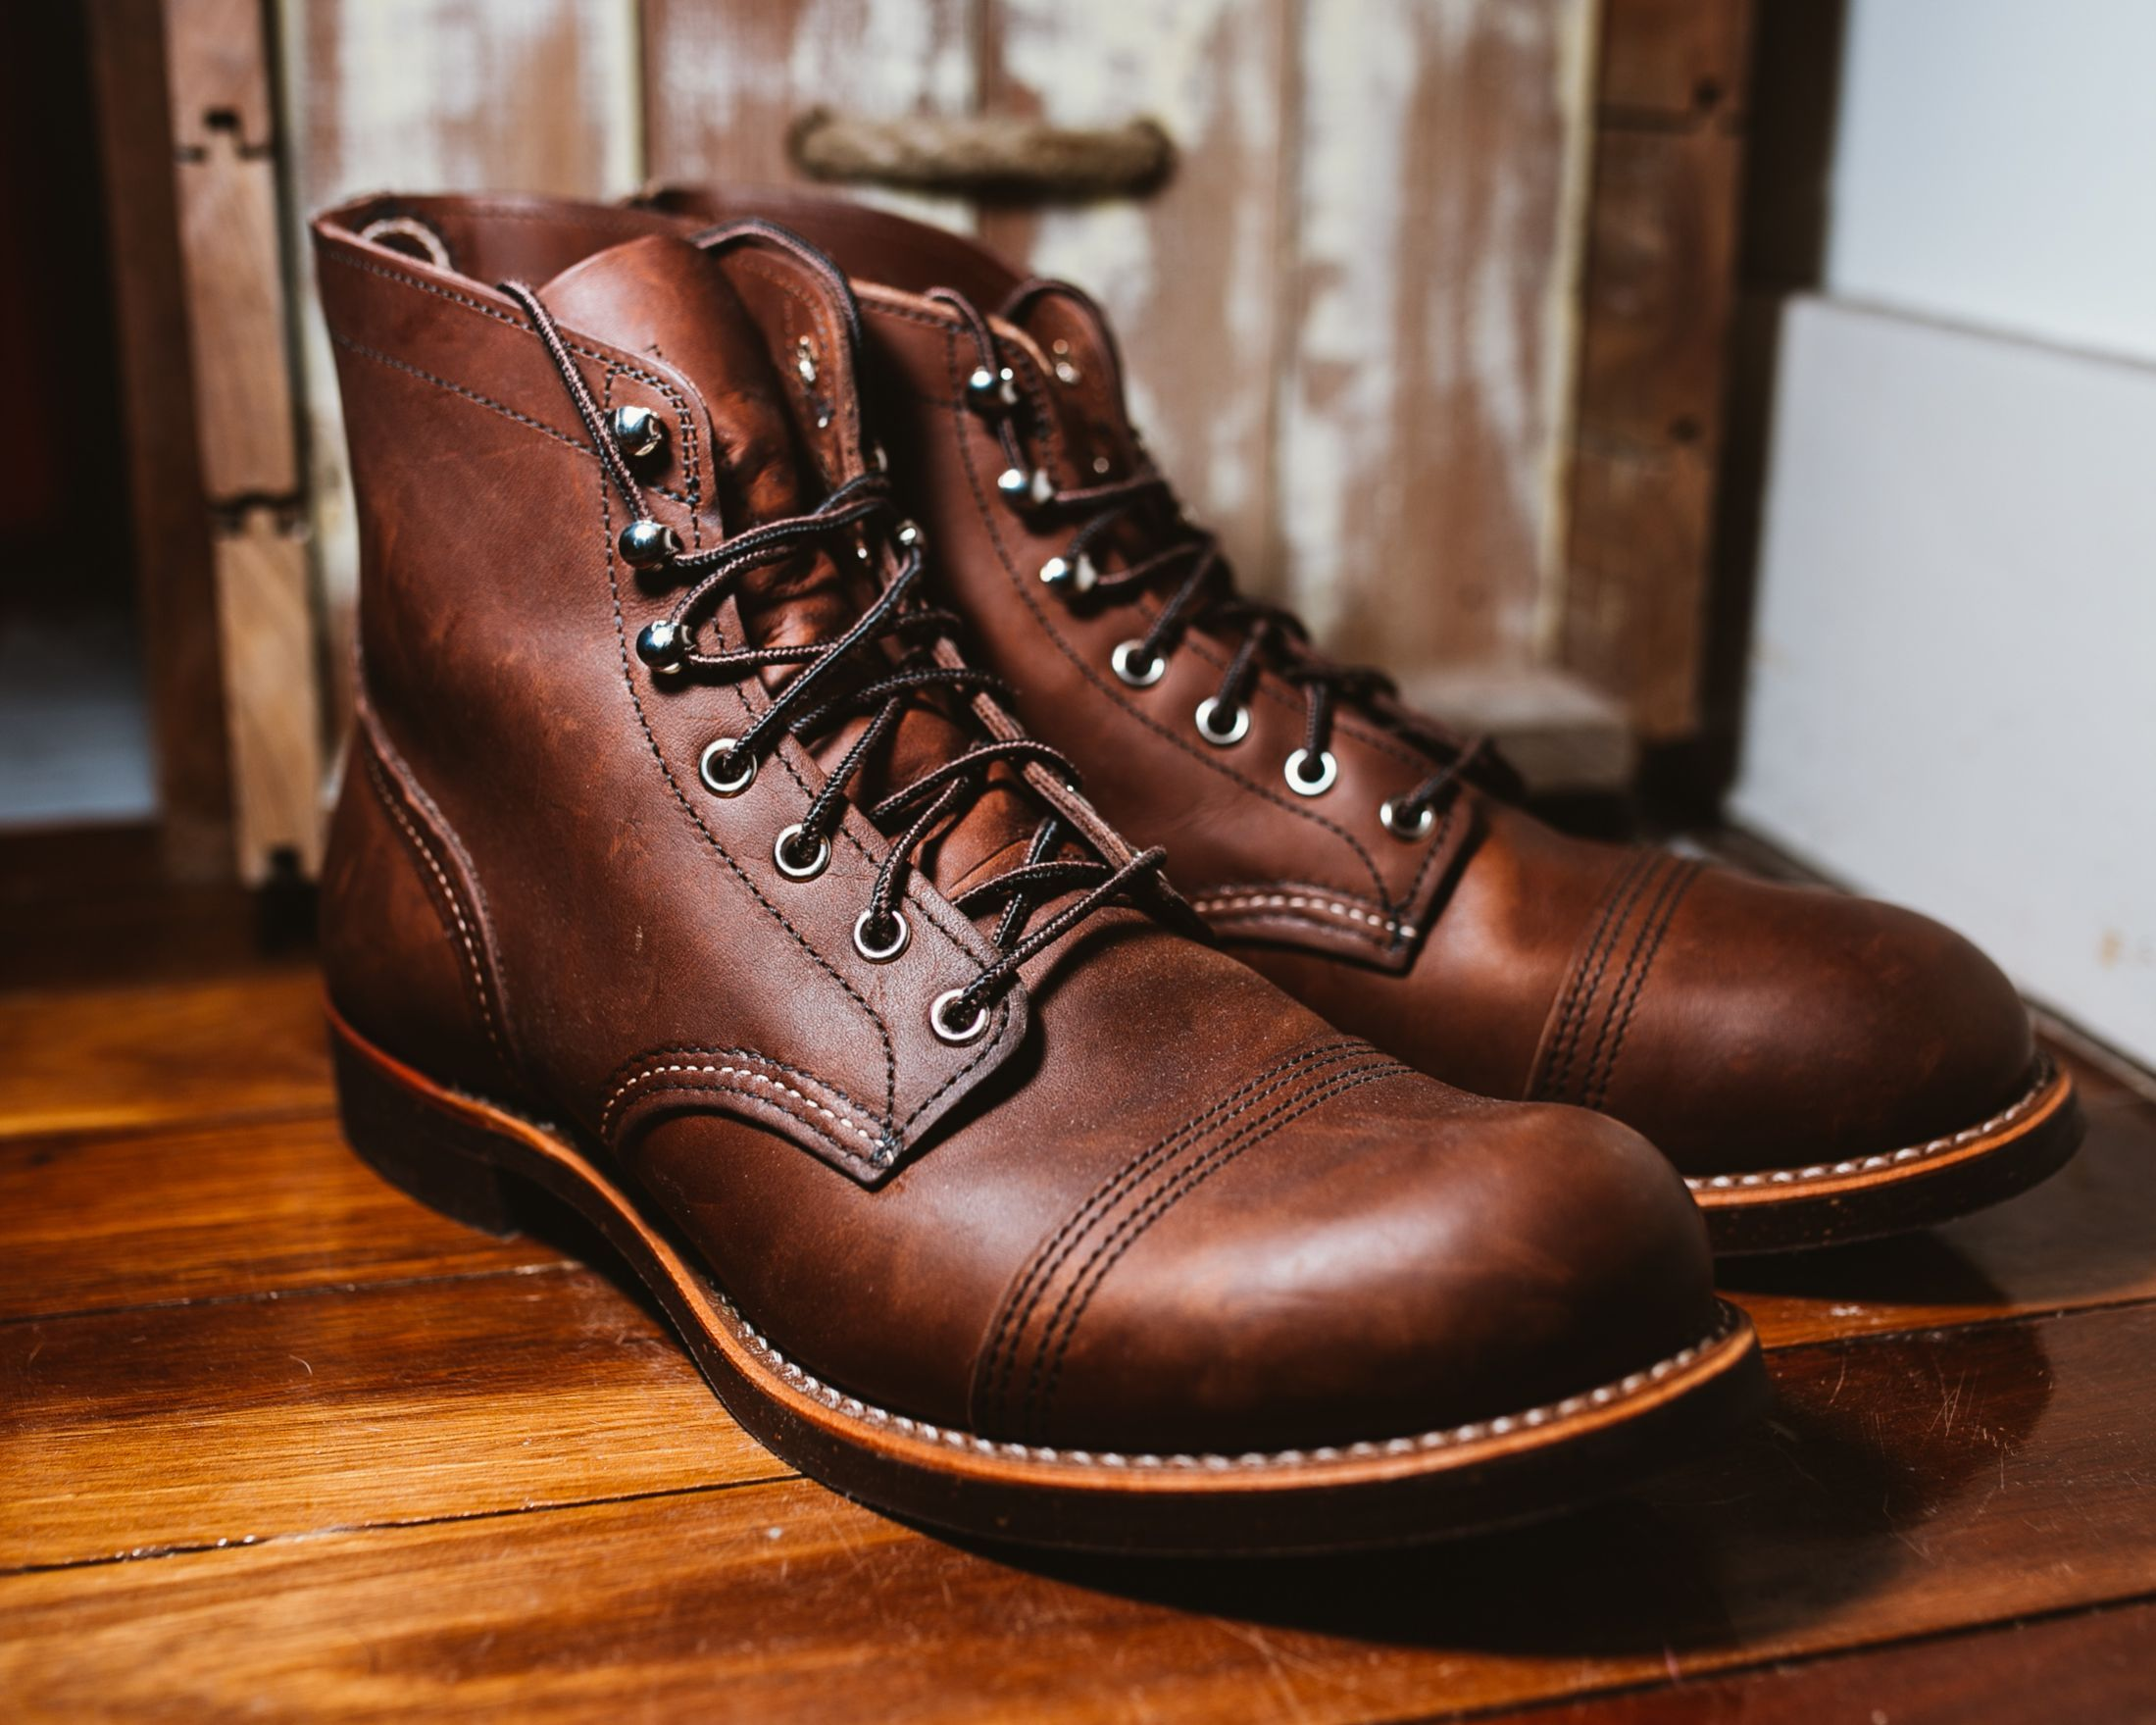 a46b643da86 Red Wing Iron Rangers | Red Wing Iron Ranger Fan Club | Red wing ...